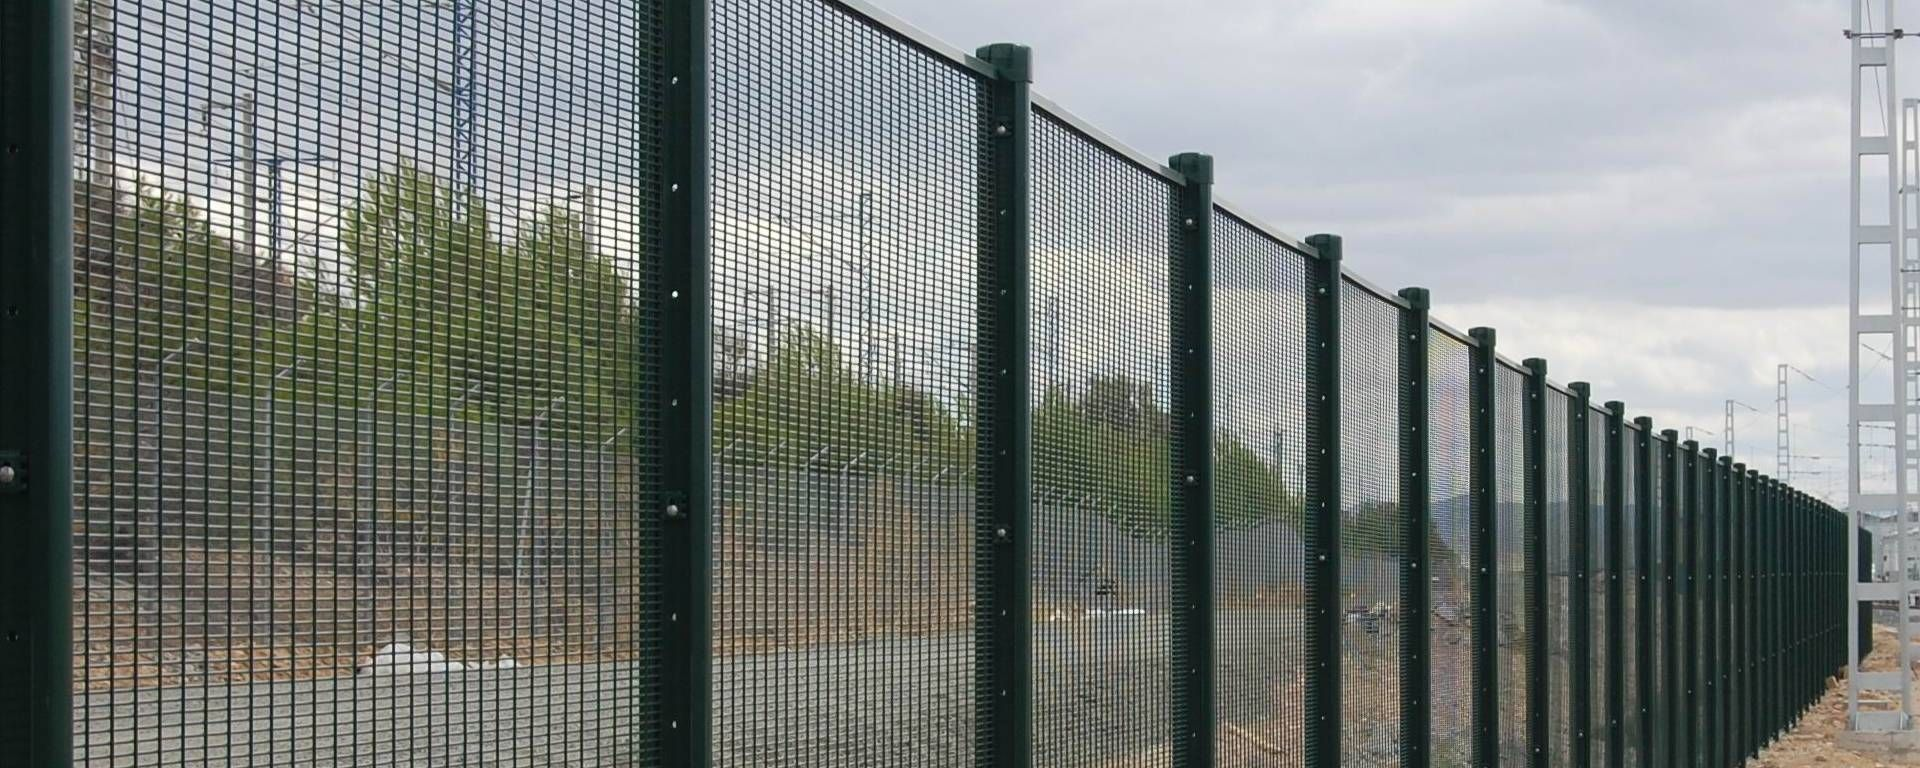 A line of 358 mesh fences are installed on the roadside.   358 mesh ...